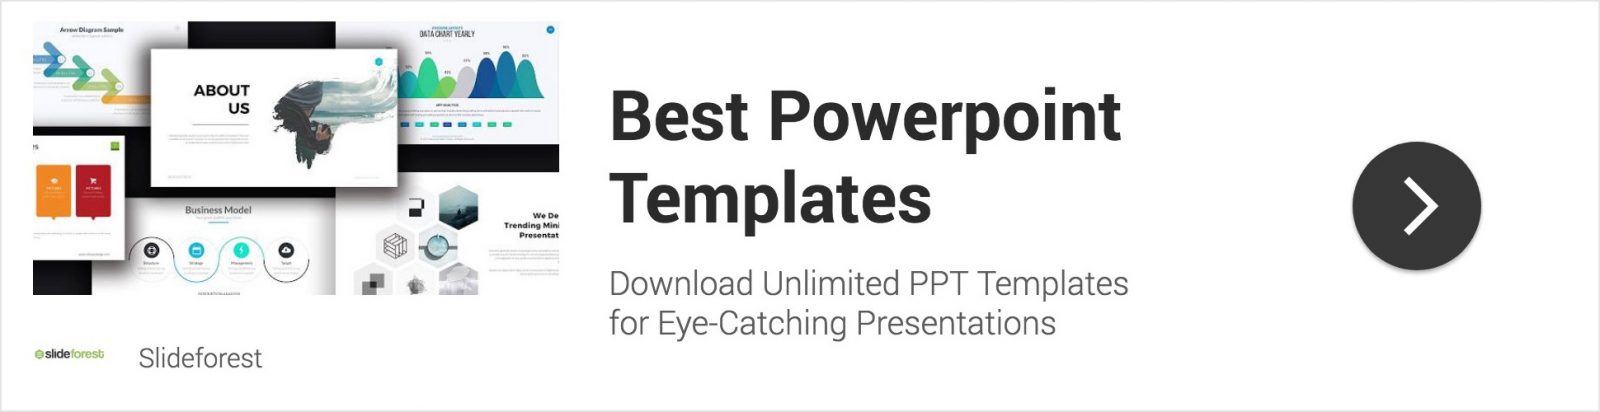 95+ Free Powerpoint Templates \u2012 Best PPT Presentation Themes